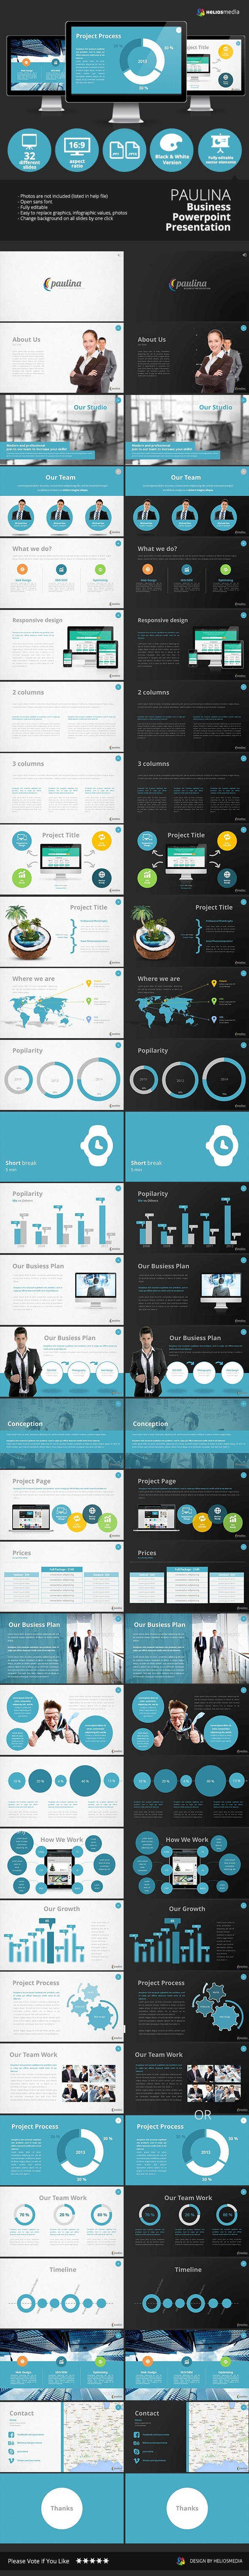 Paulina Business Powerpoint Presentation - Business PowerPoint Templates